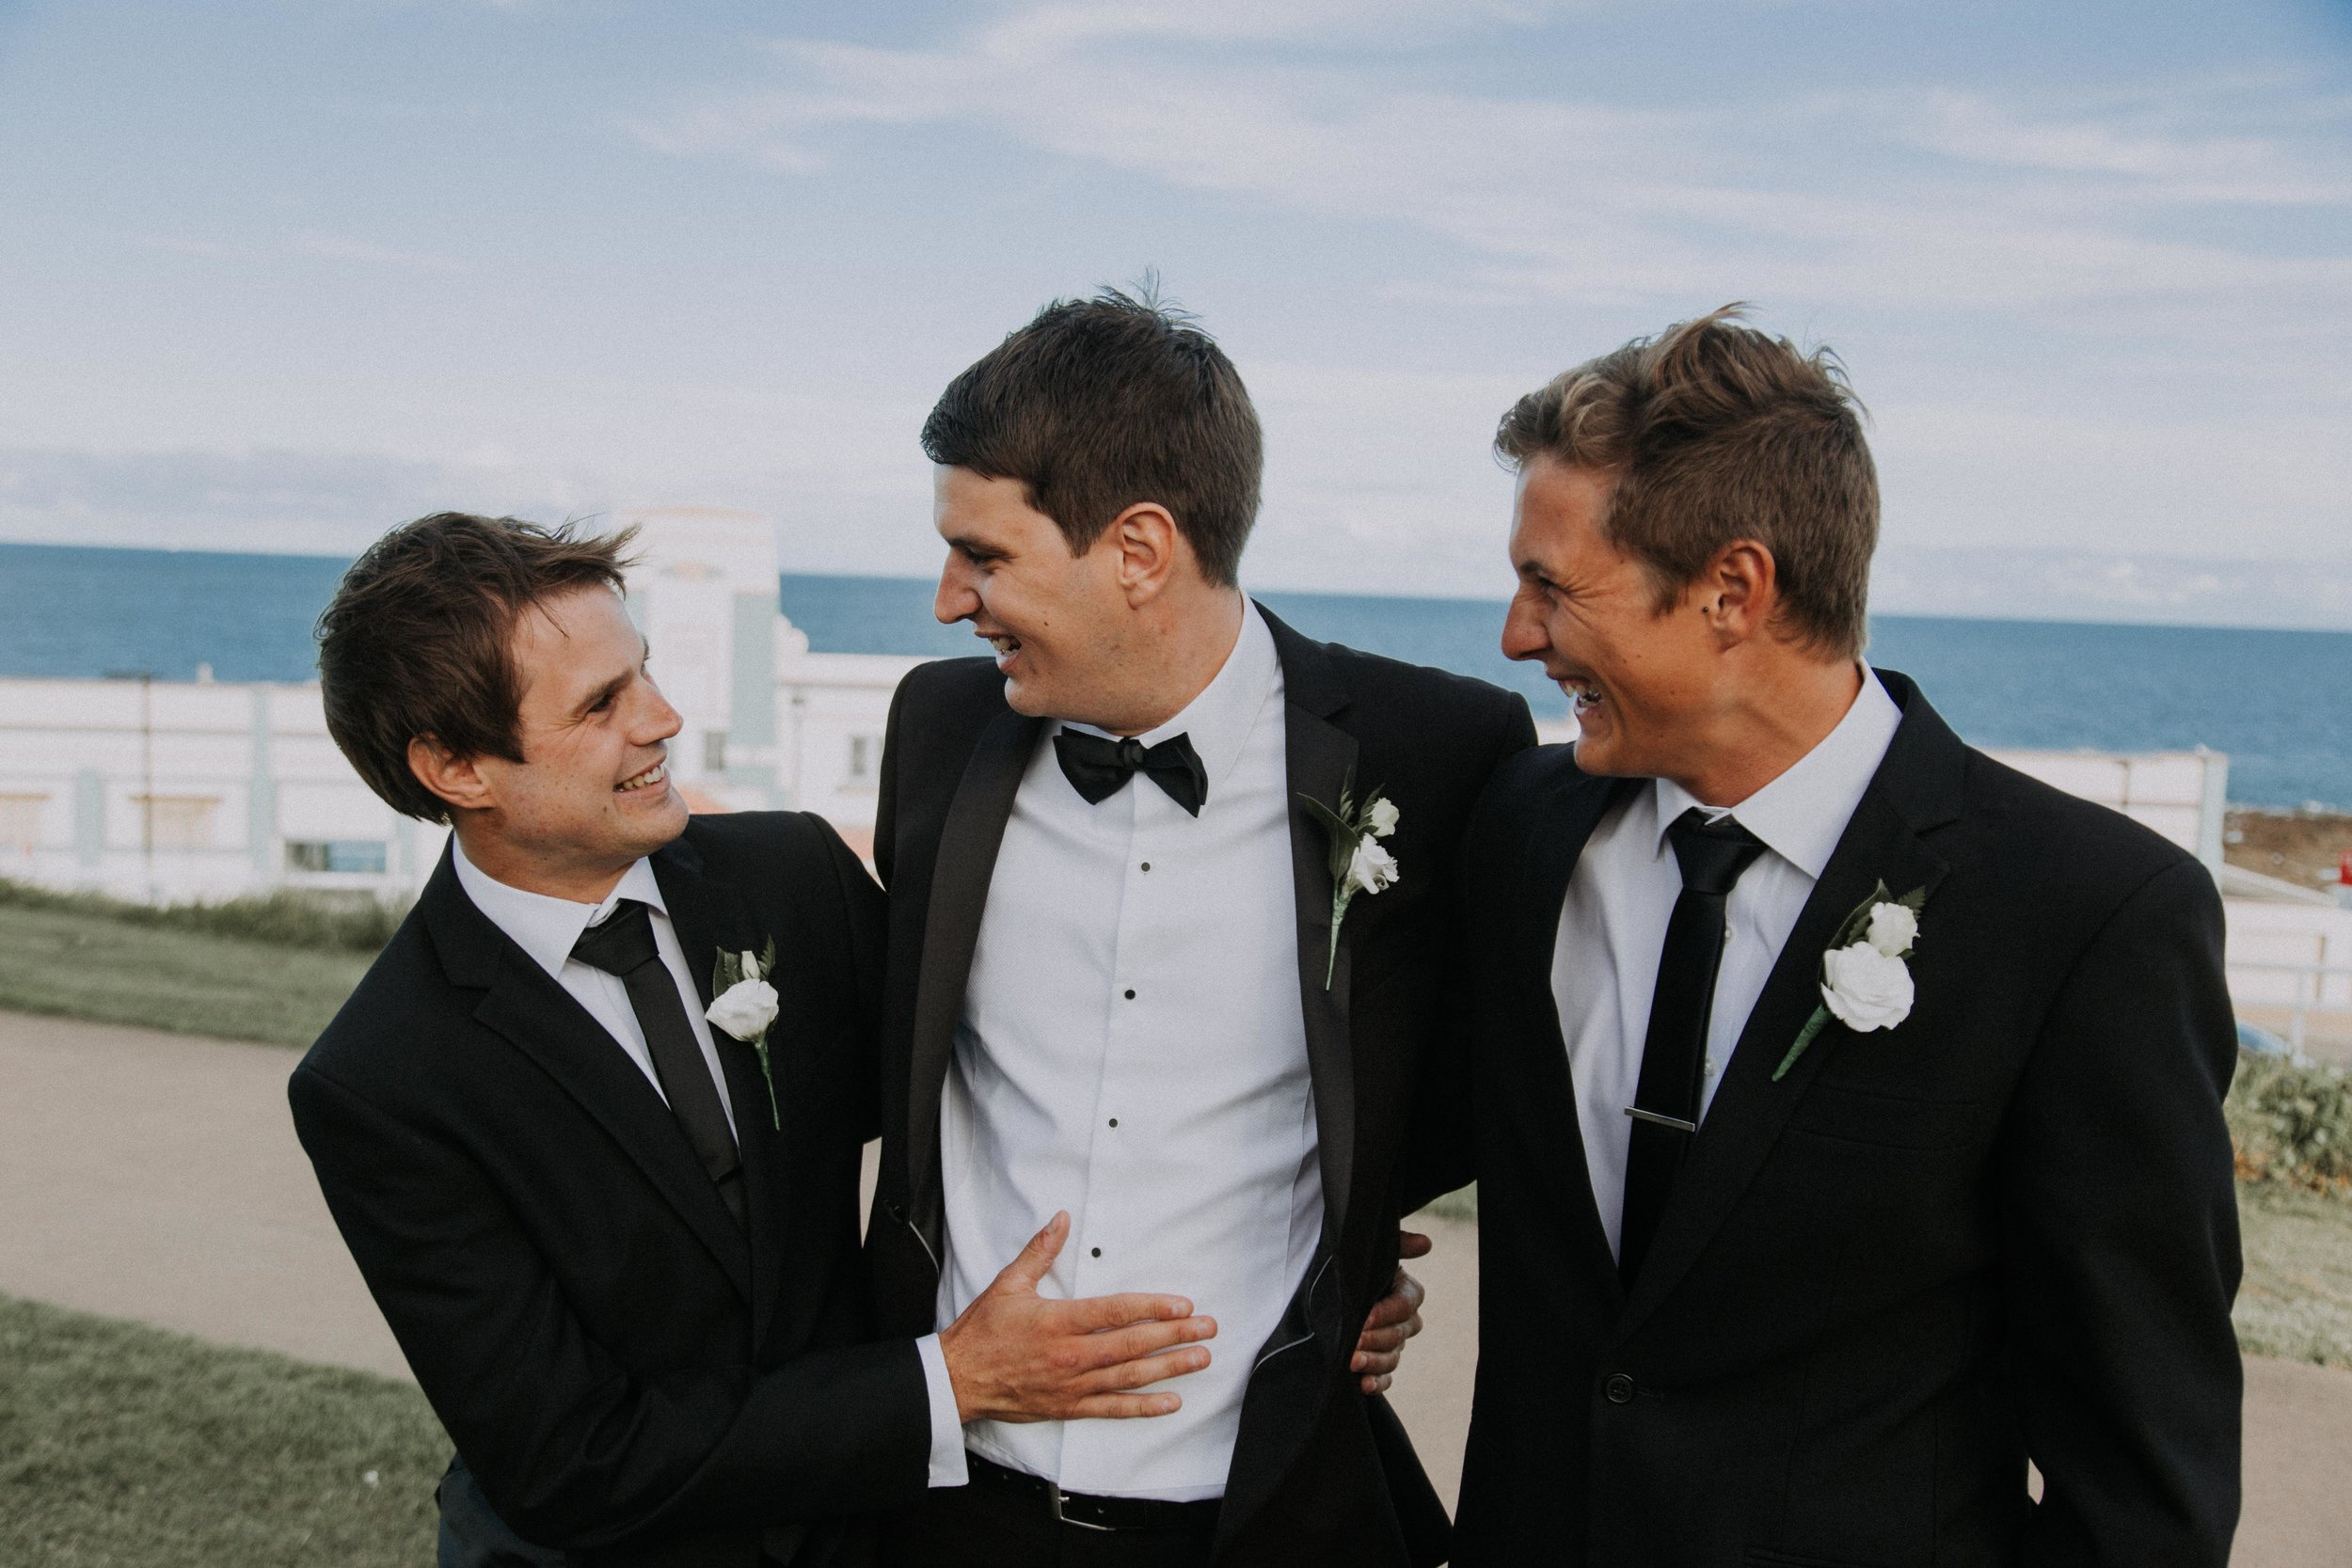 Monique + Nick Vincent - Wedding Photos FINALS-128.jpg